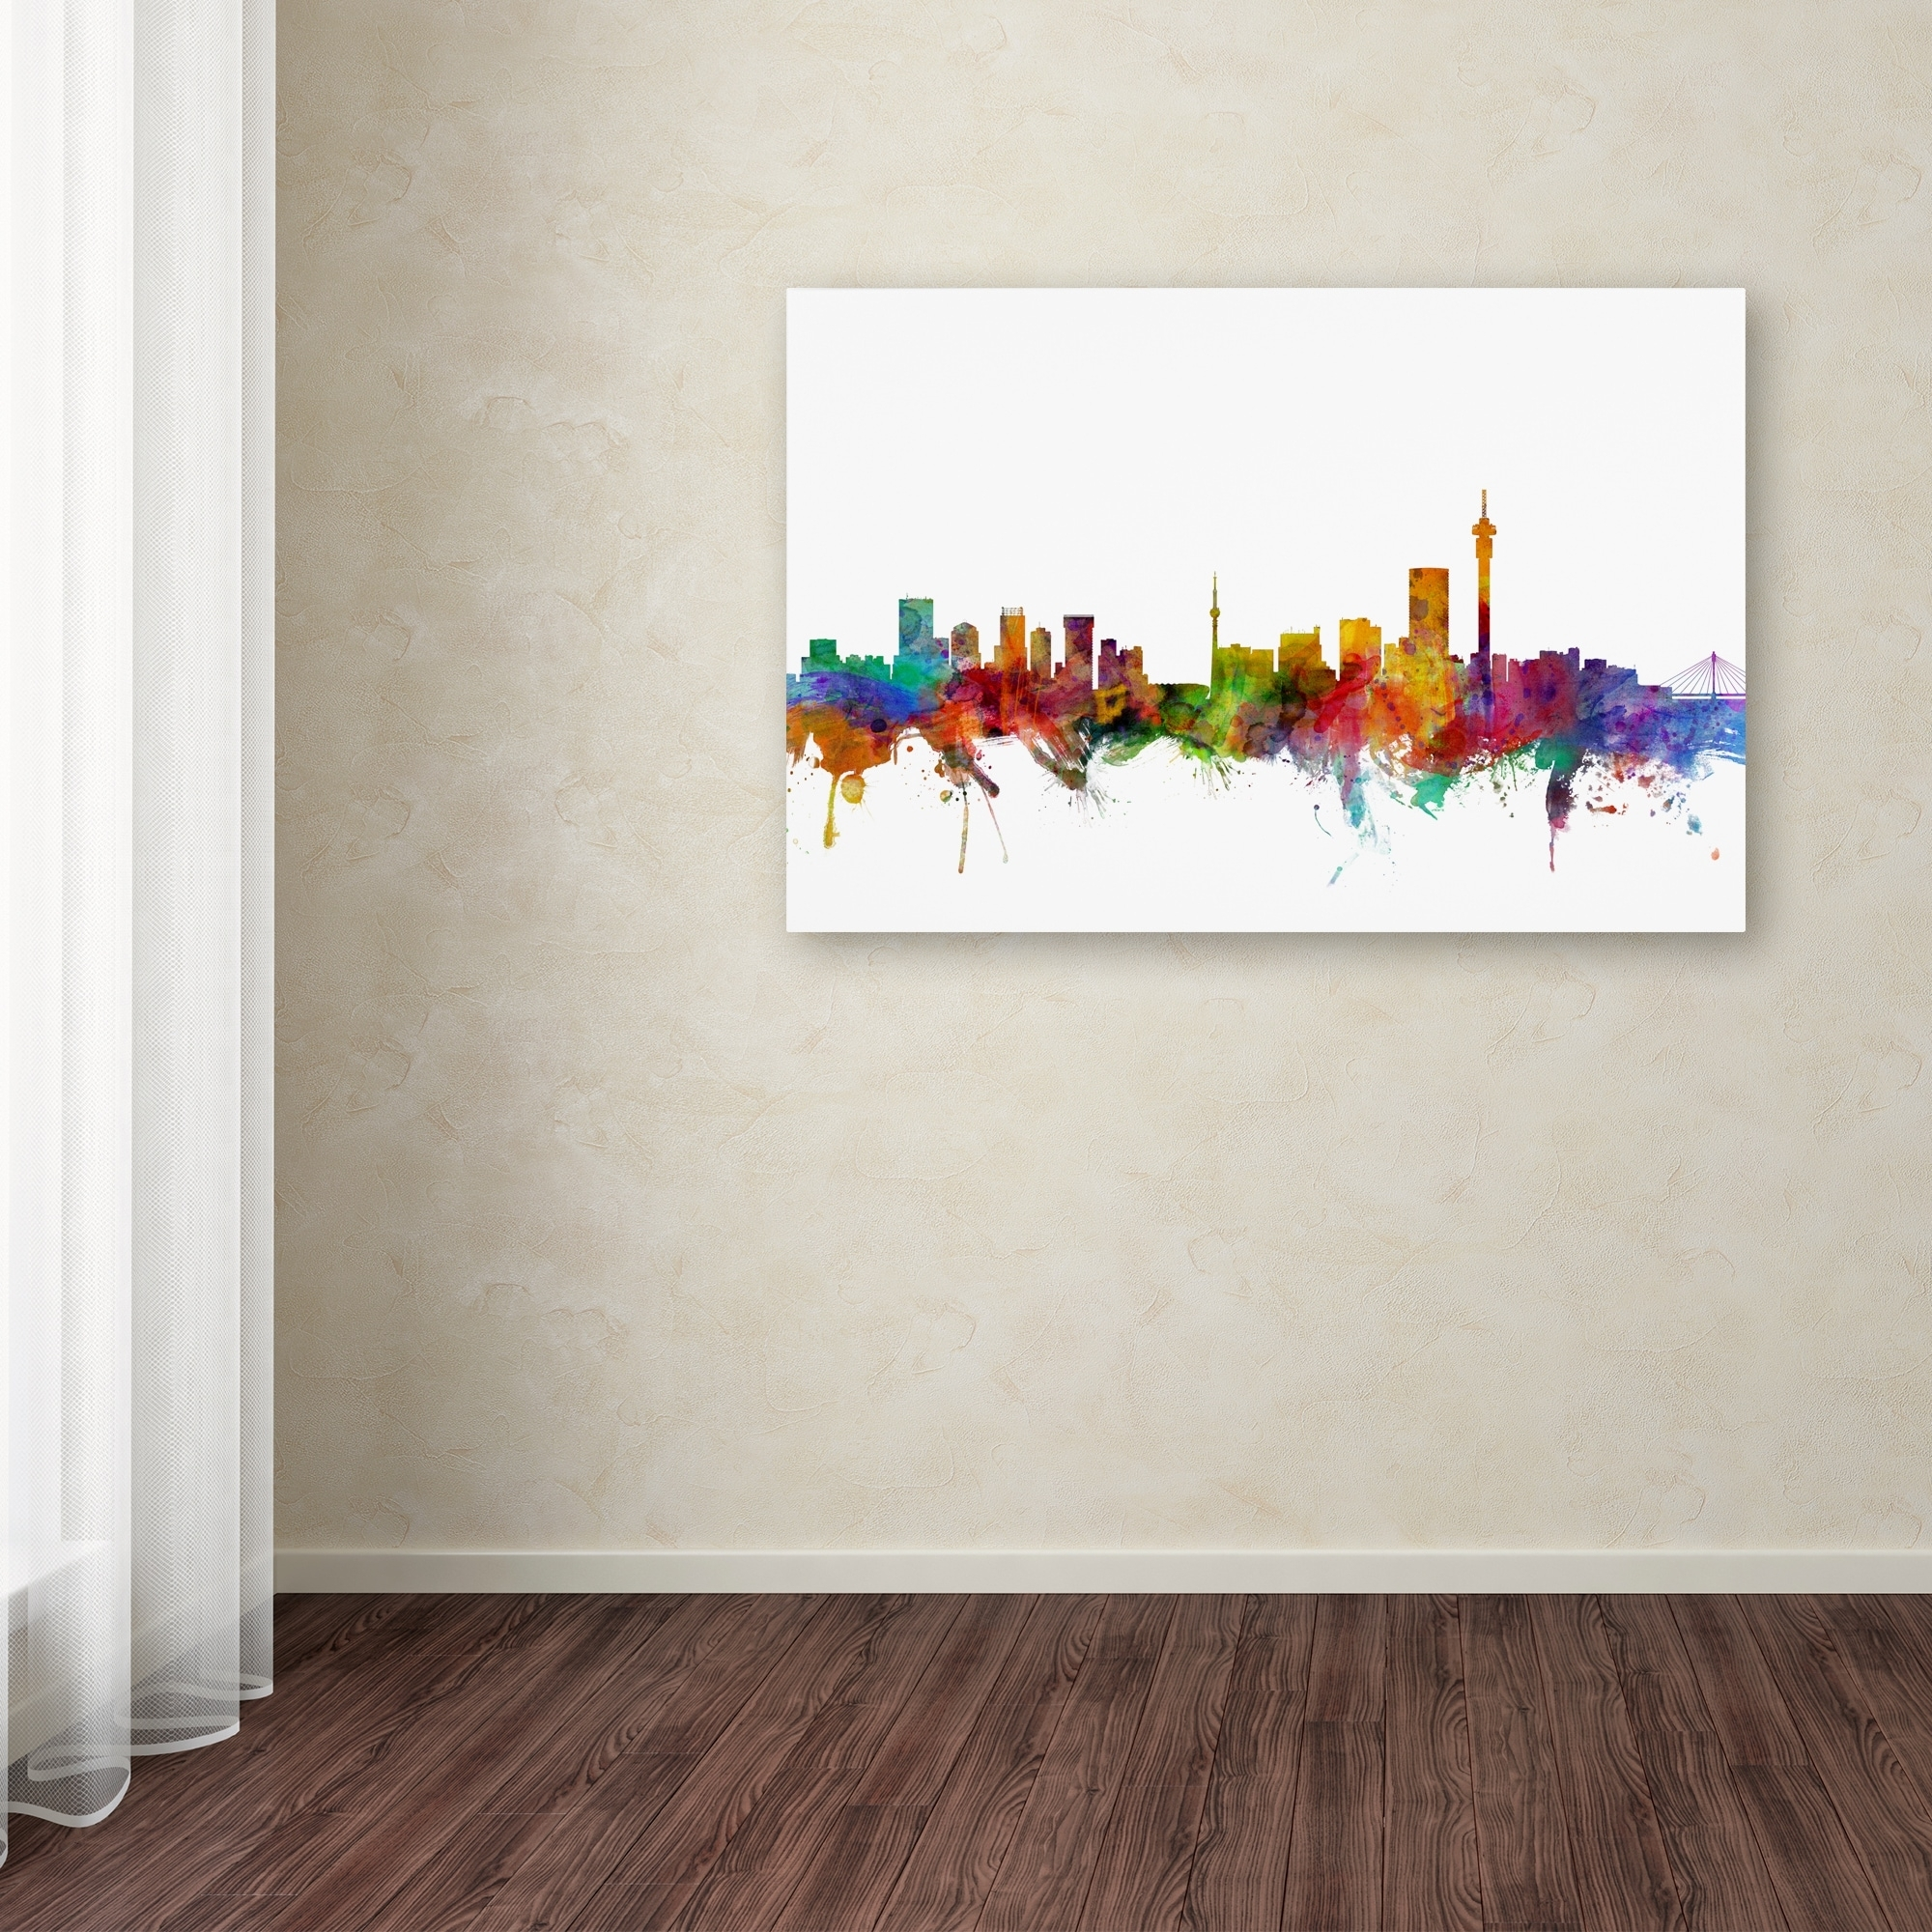 Michael Tompsett 'johannesburg South Africa Skyline' Canvas Wall With Best And Newest Johannesburg Canvas Wall Art (View 11 of 15)